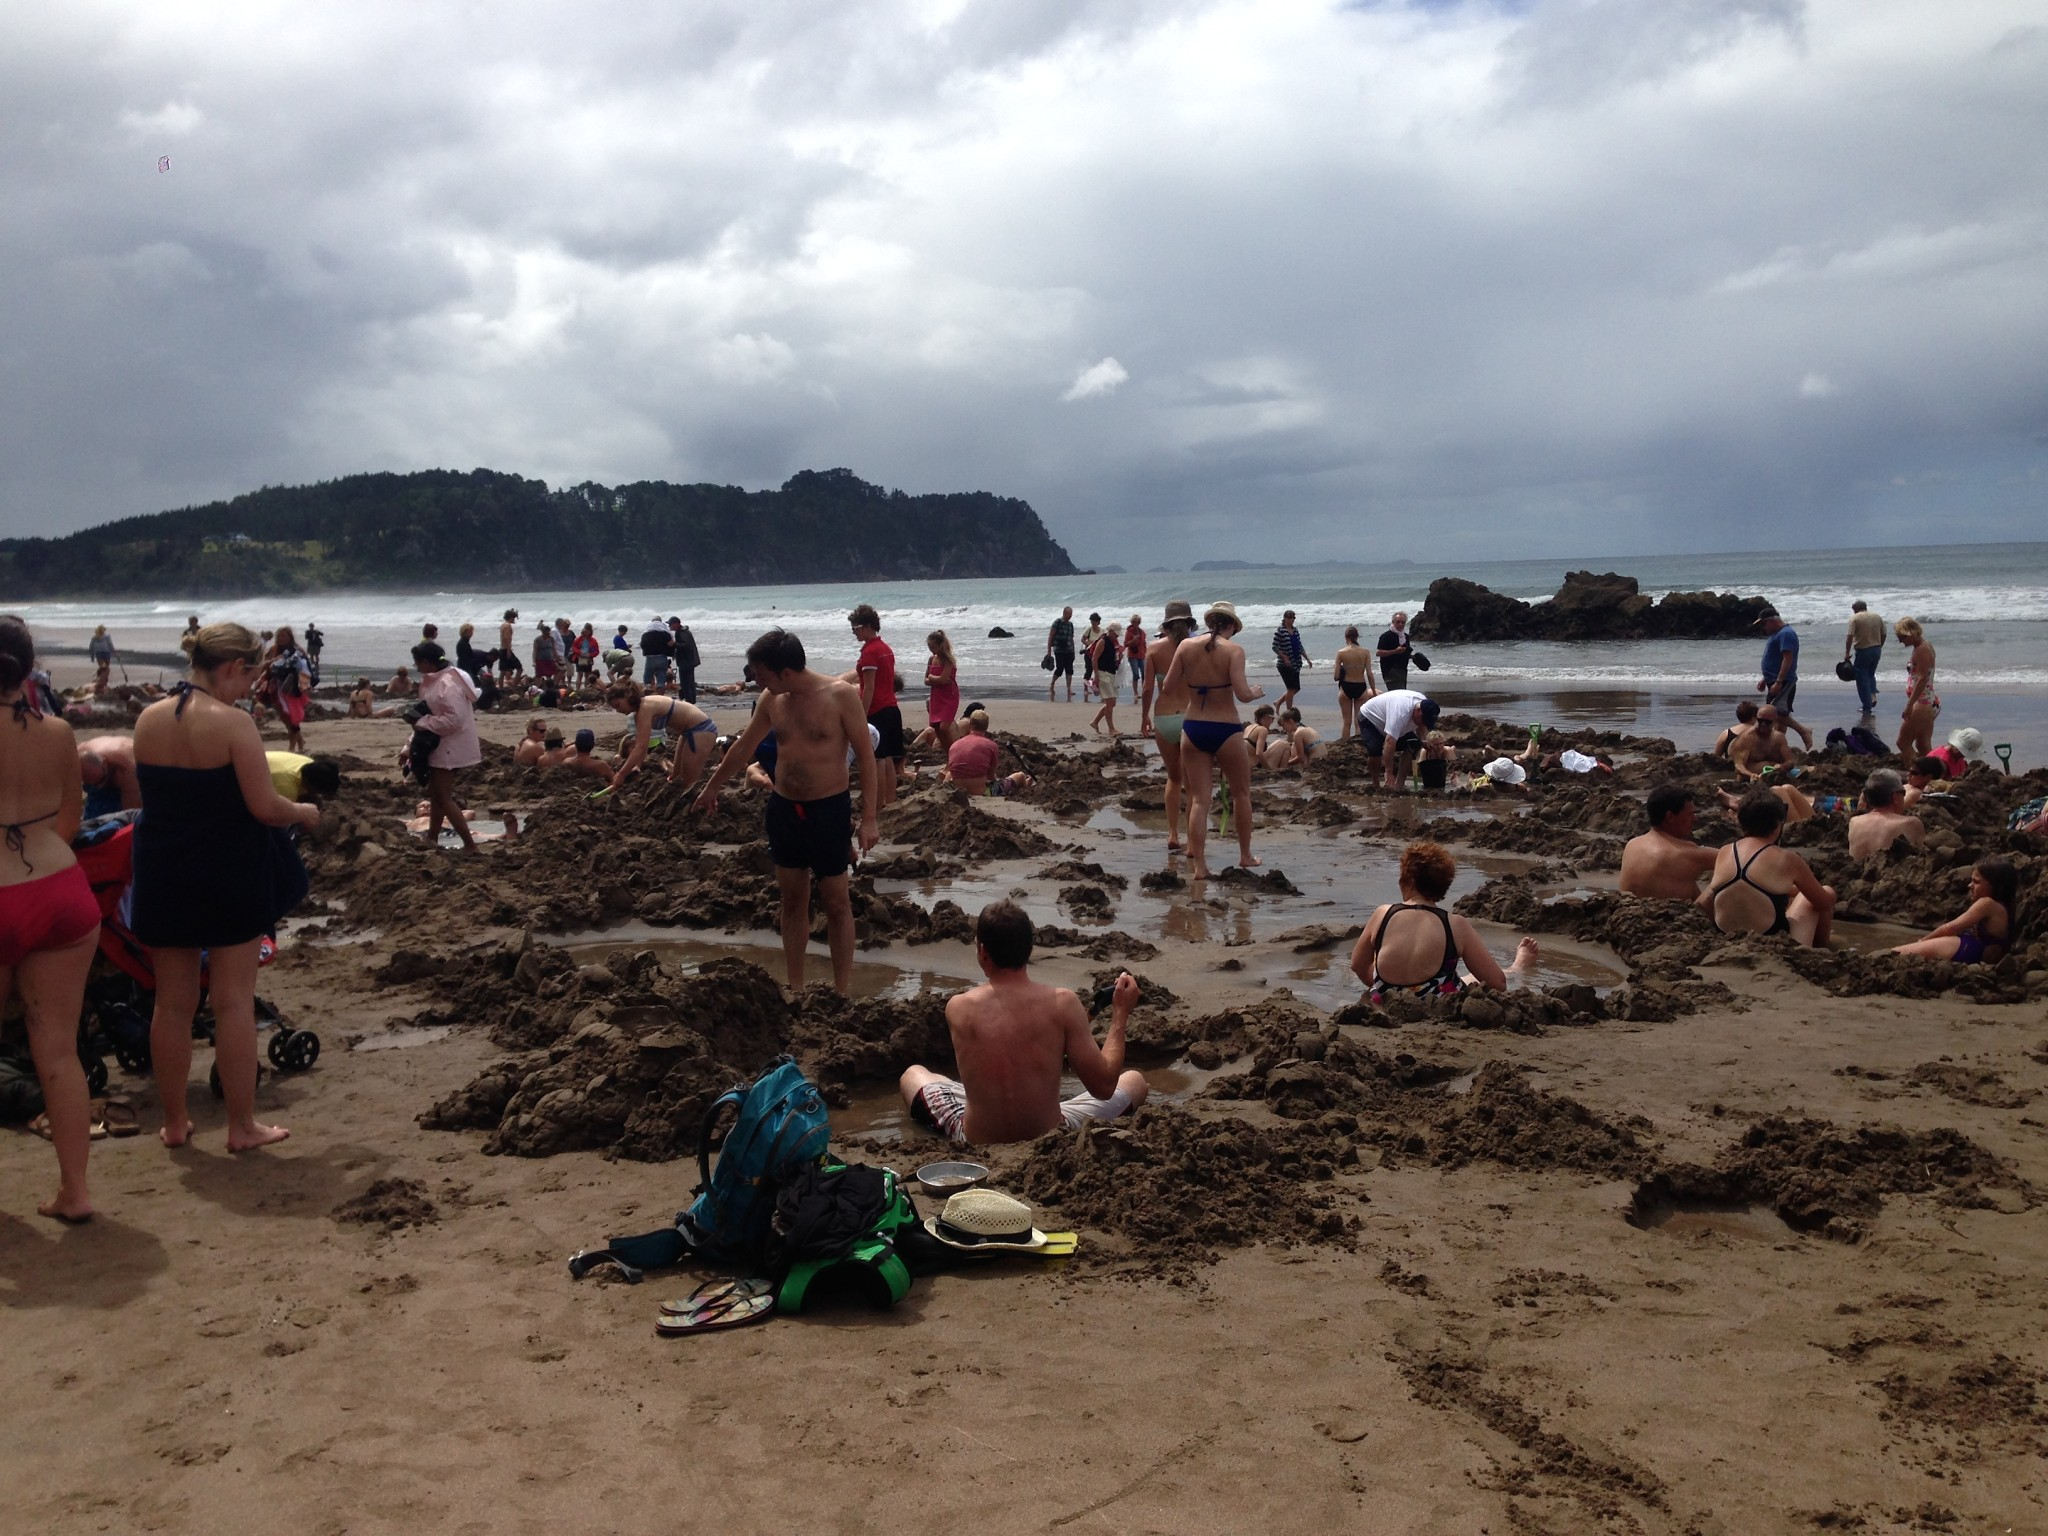 hot water beach, hot, water, beach, coromandel, north island, new zealand,